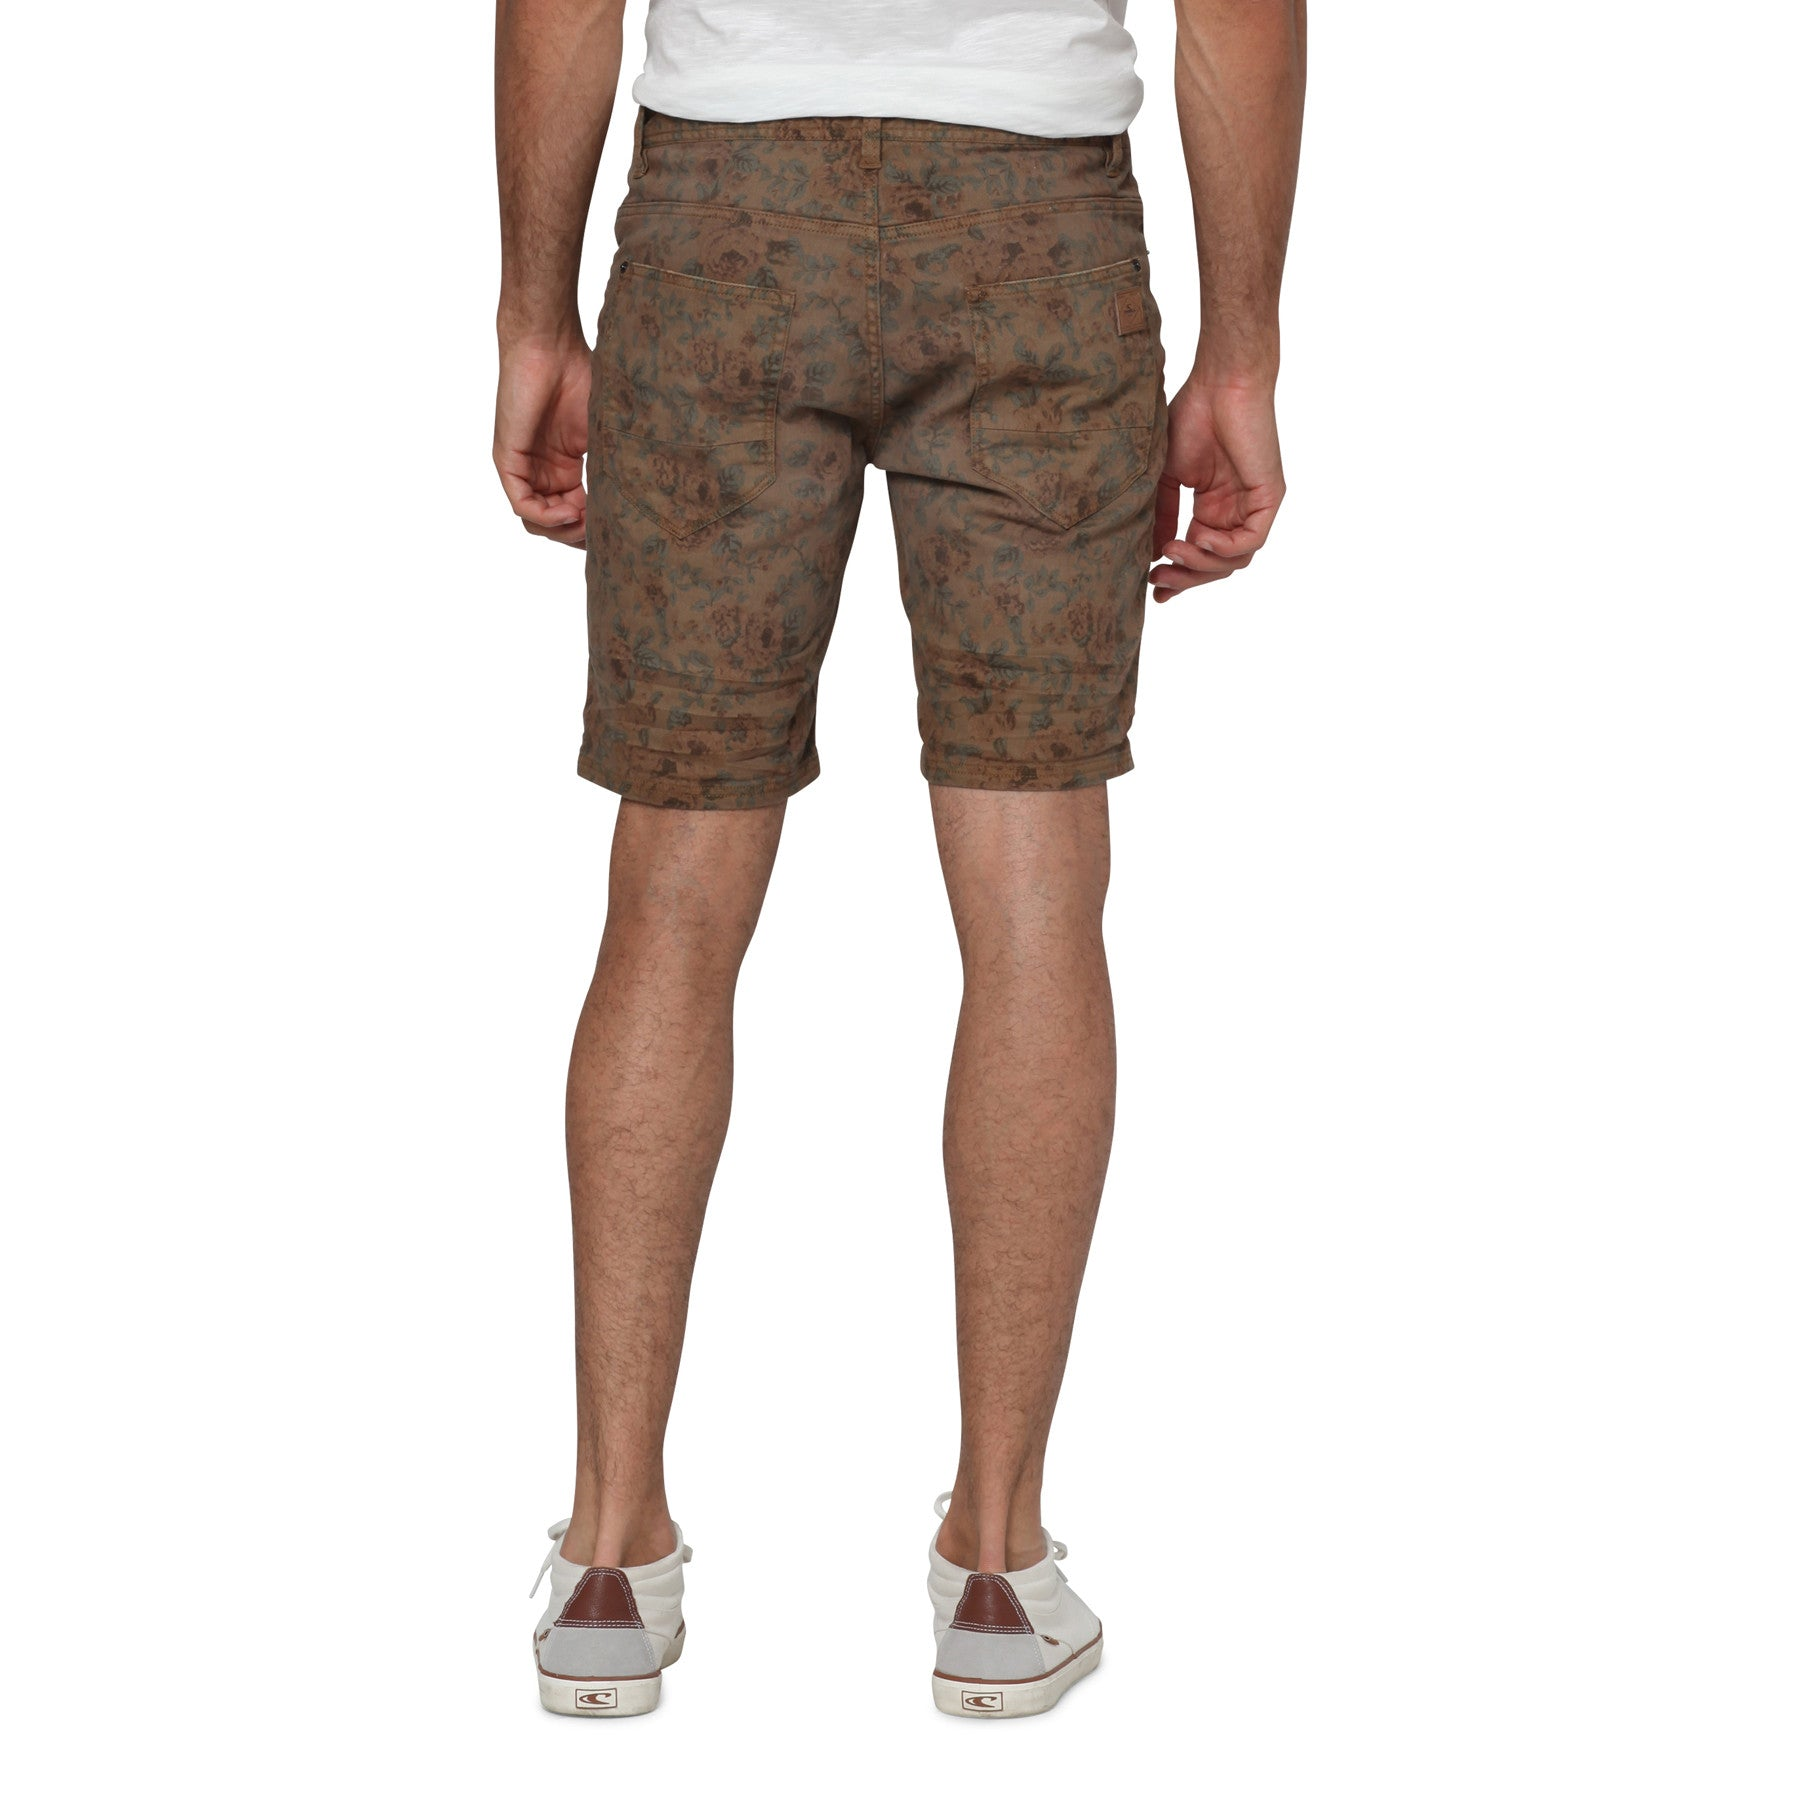 Stringer Pattern Walkshorts Brown AOP - Stoked Boardshop  - 4